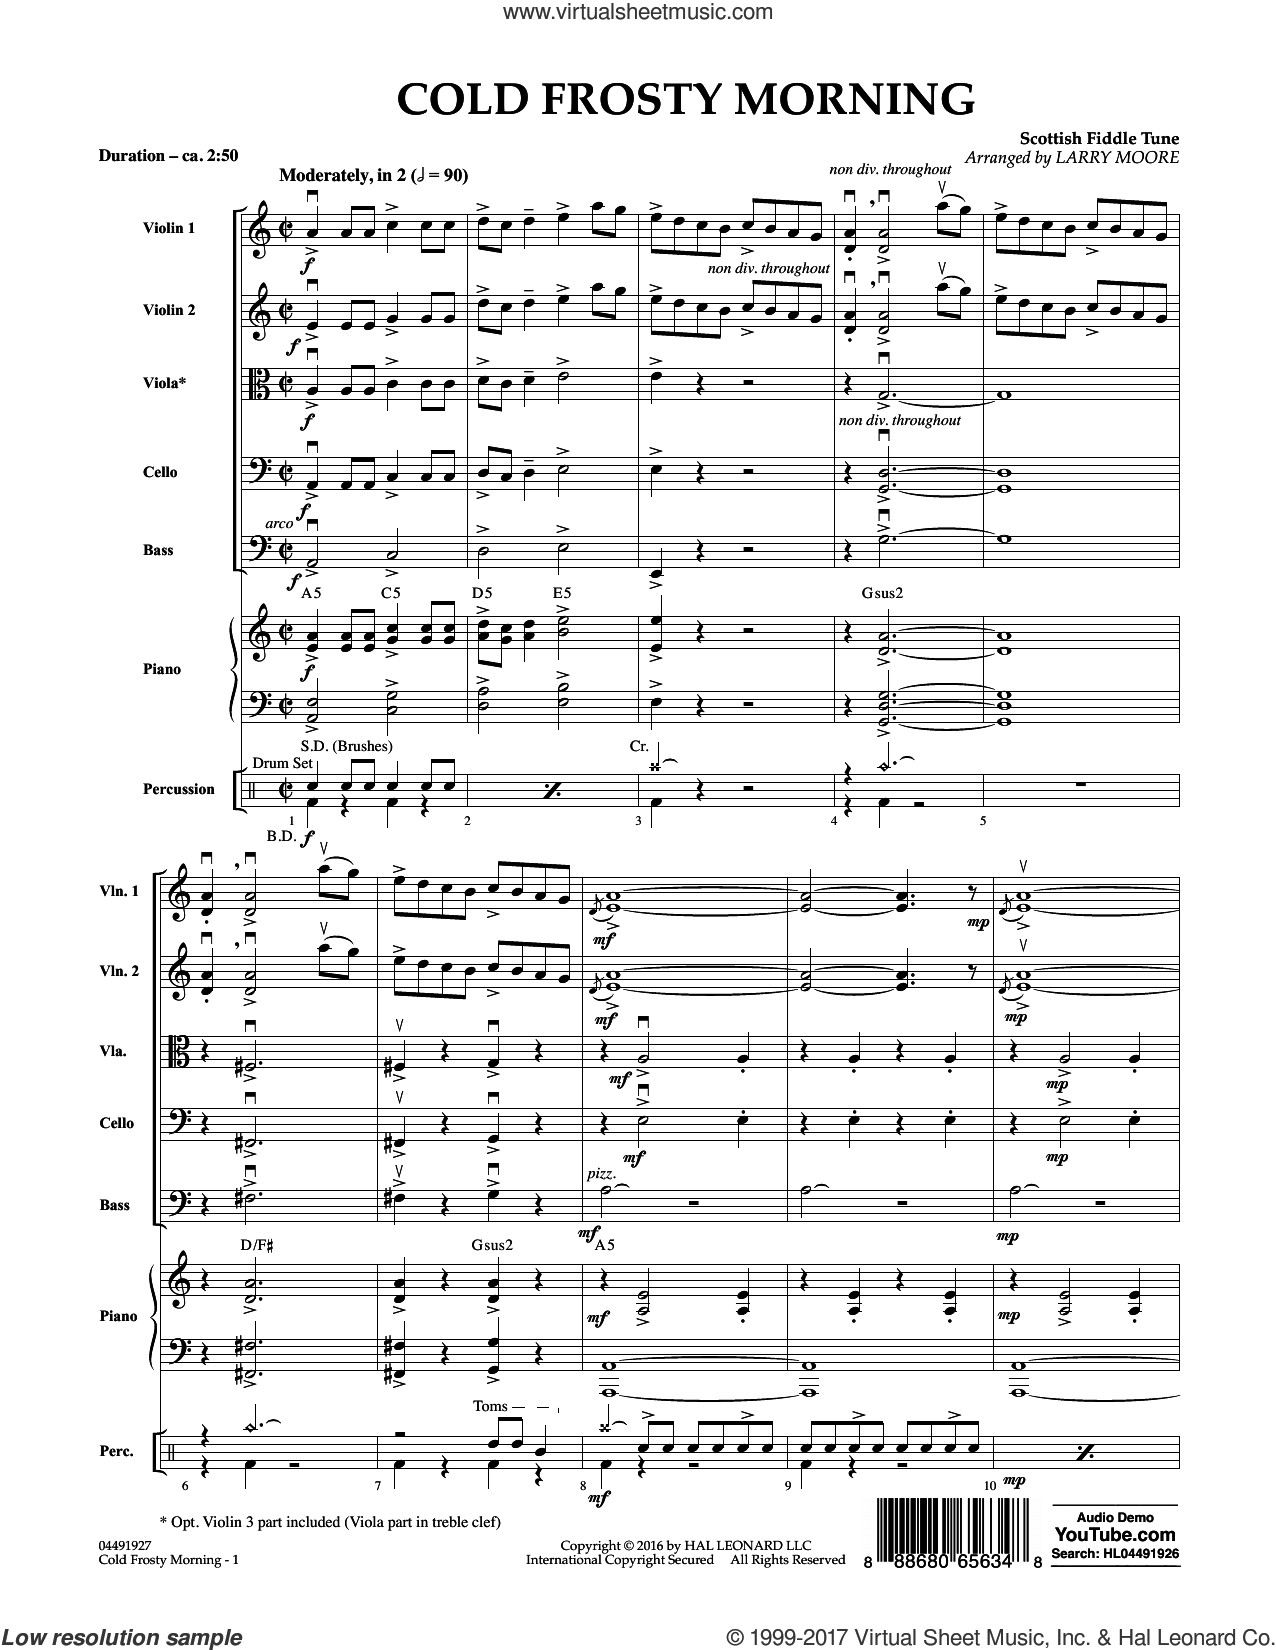 Cold Frosty Morning (COMPLETE) sheet music for orchestra by Larry Moore and Scottish Fiddle Tune, intermediate skill level